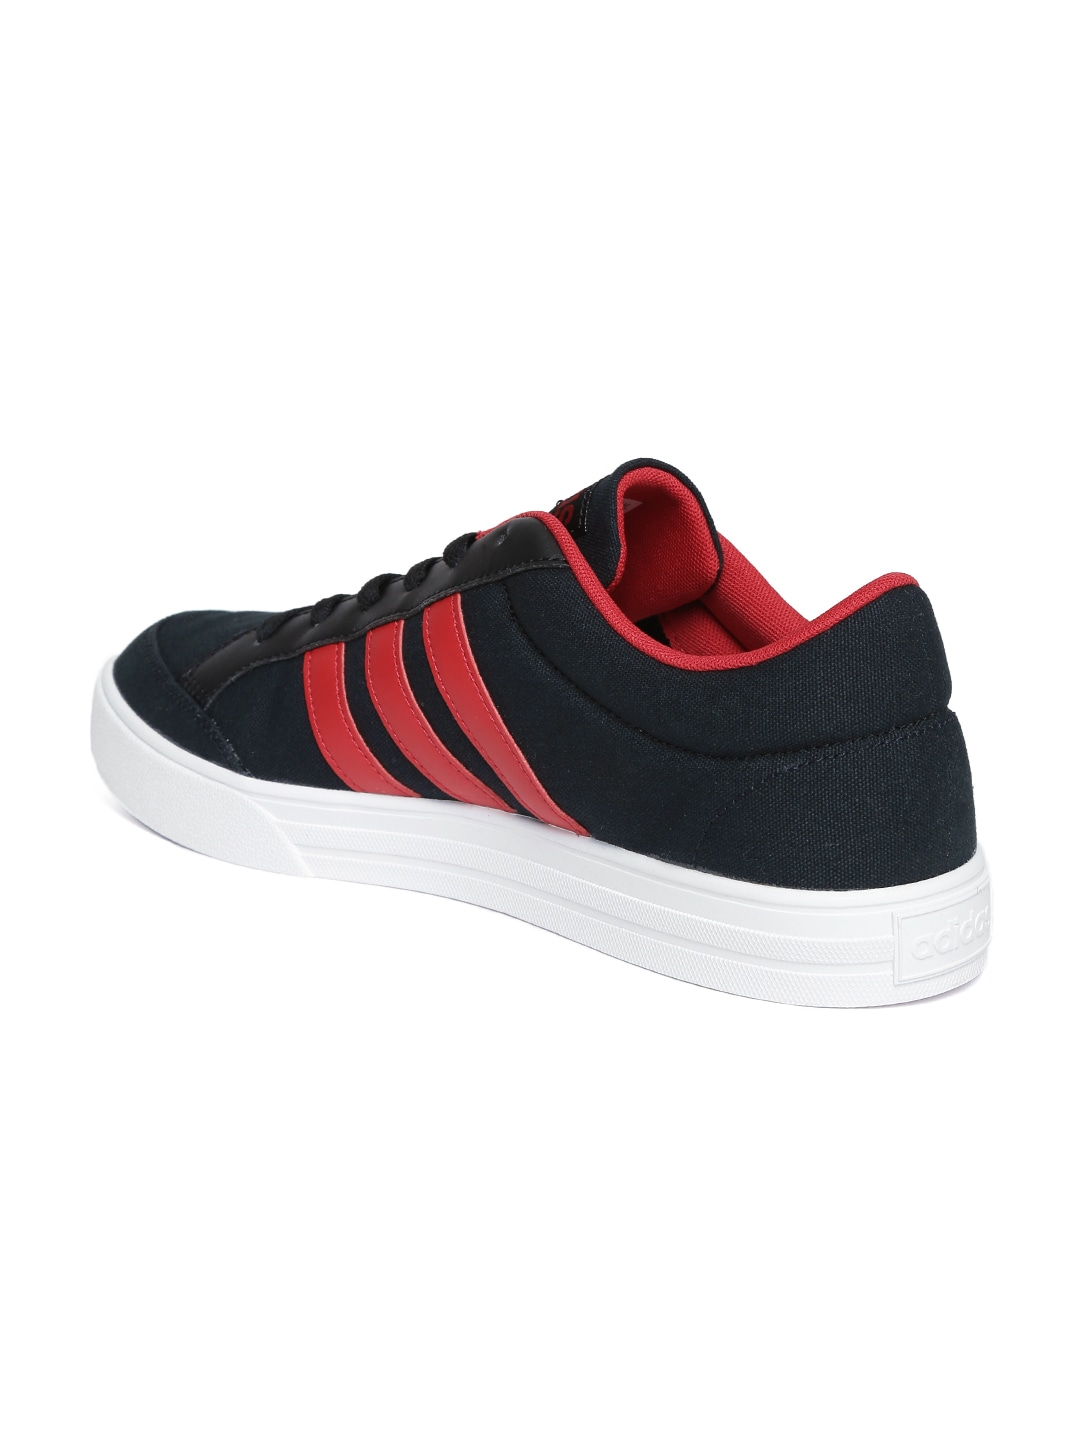 adidas neo shoes buy adidas neo shoes online in india